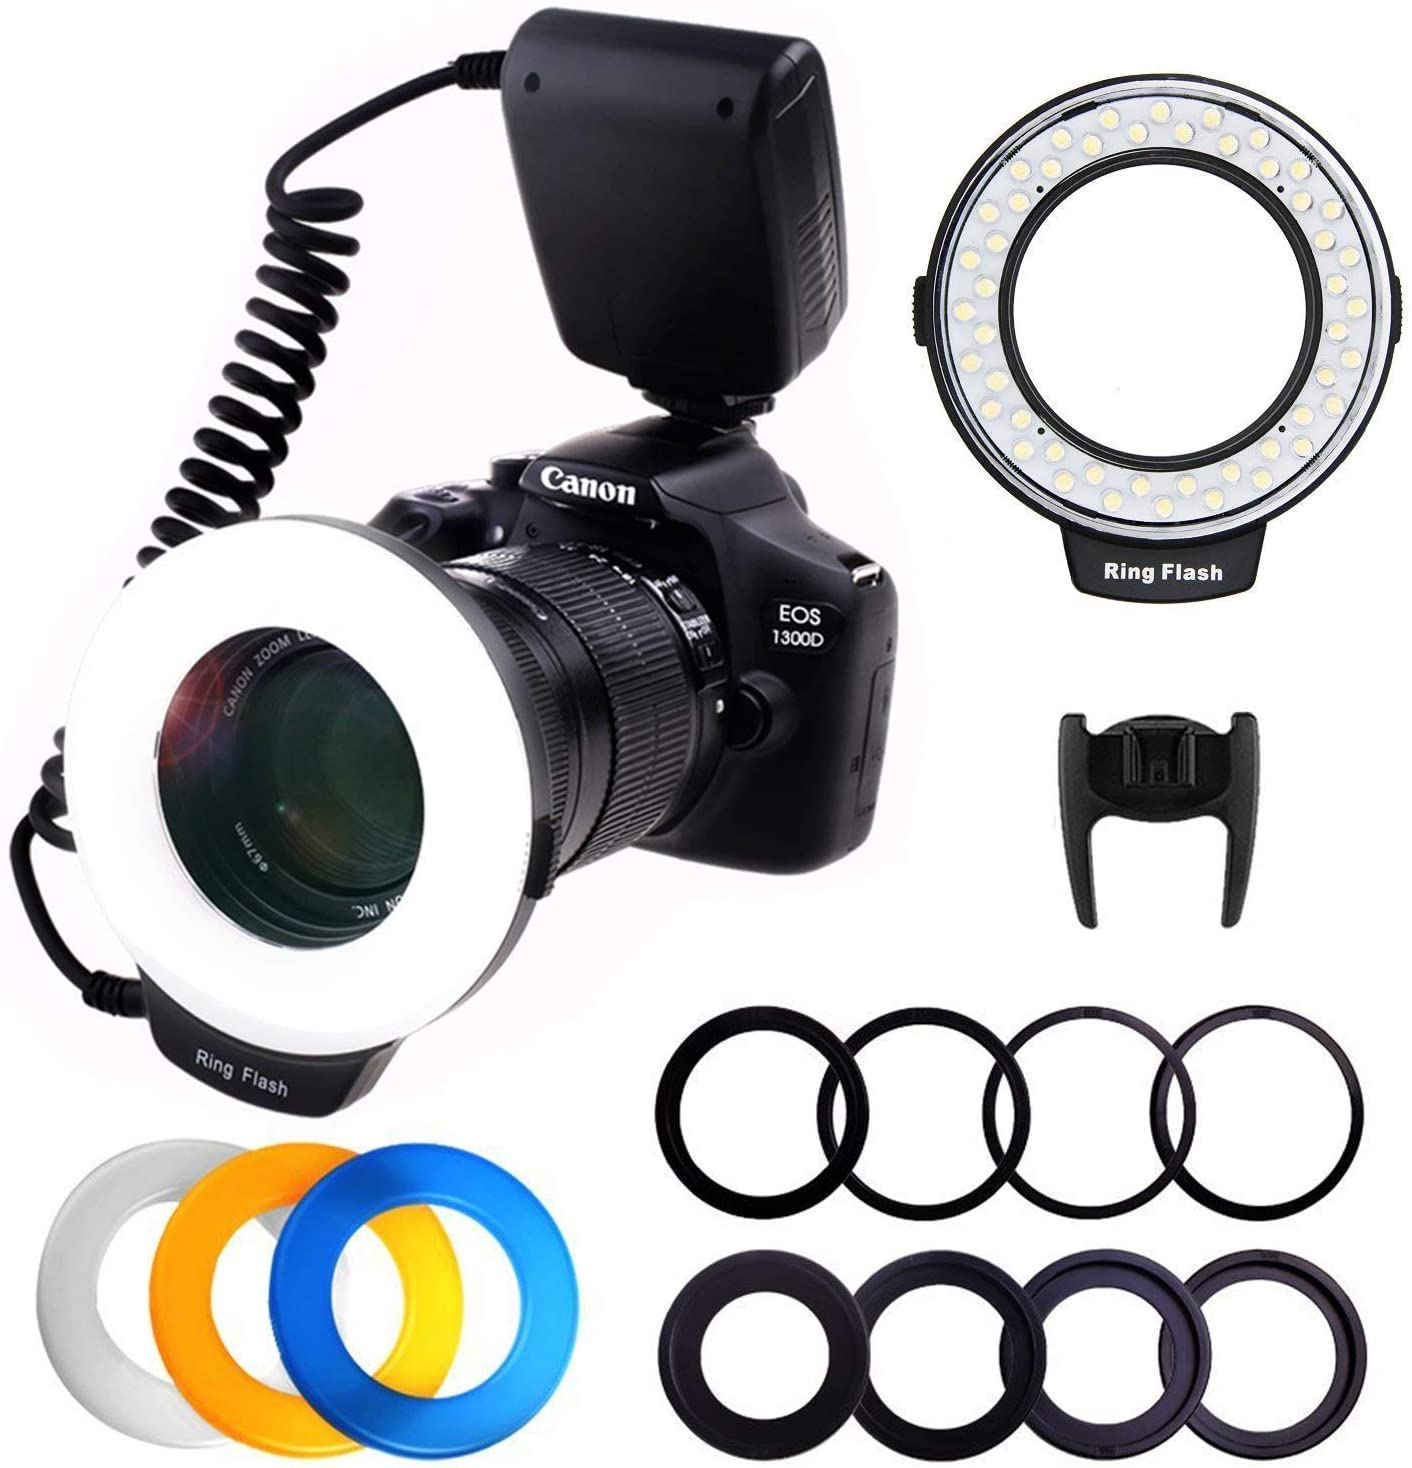 PLOTURE Flash Light with LCD Display Adapter Rings and Flash Diff-Users Works with Canon Nikon and Other DSLR Cameras